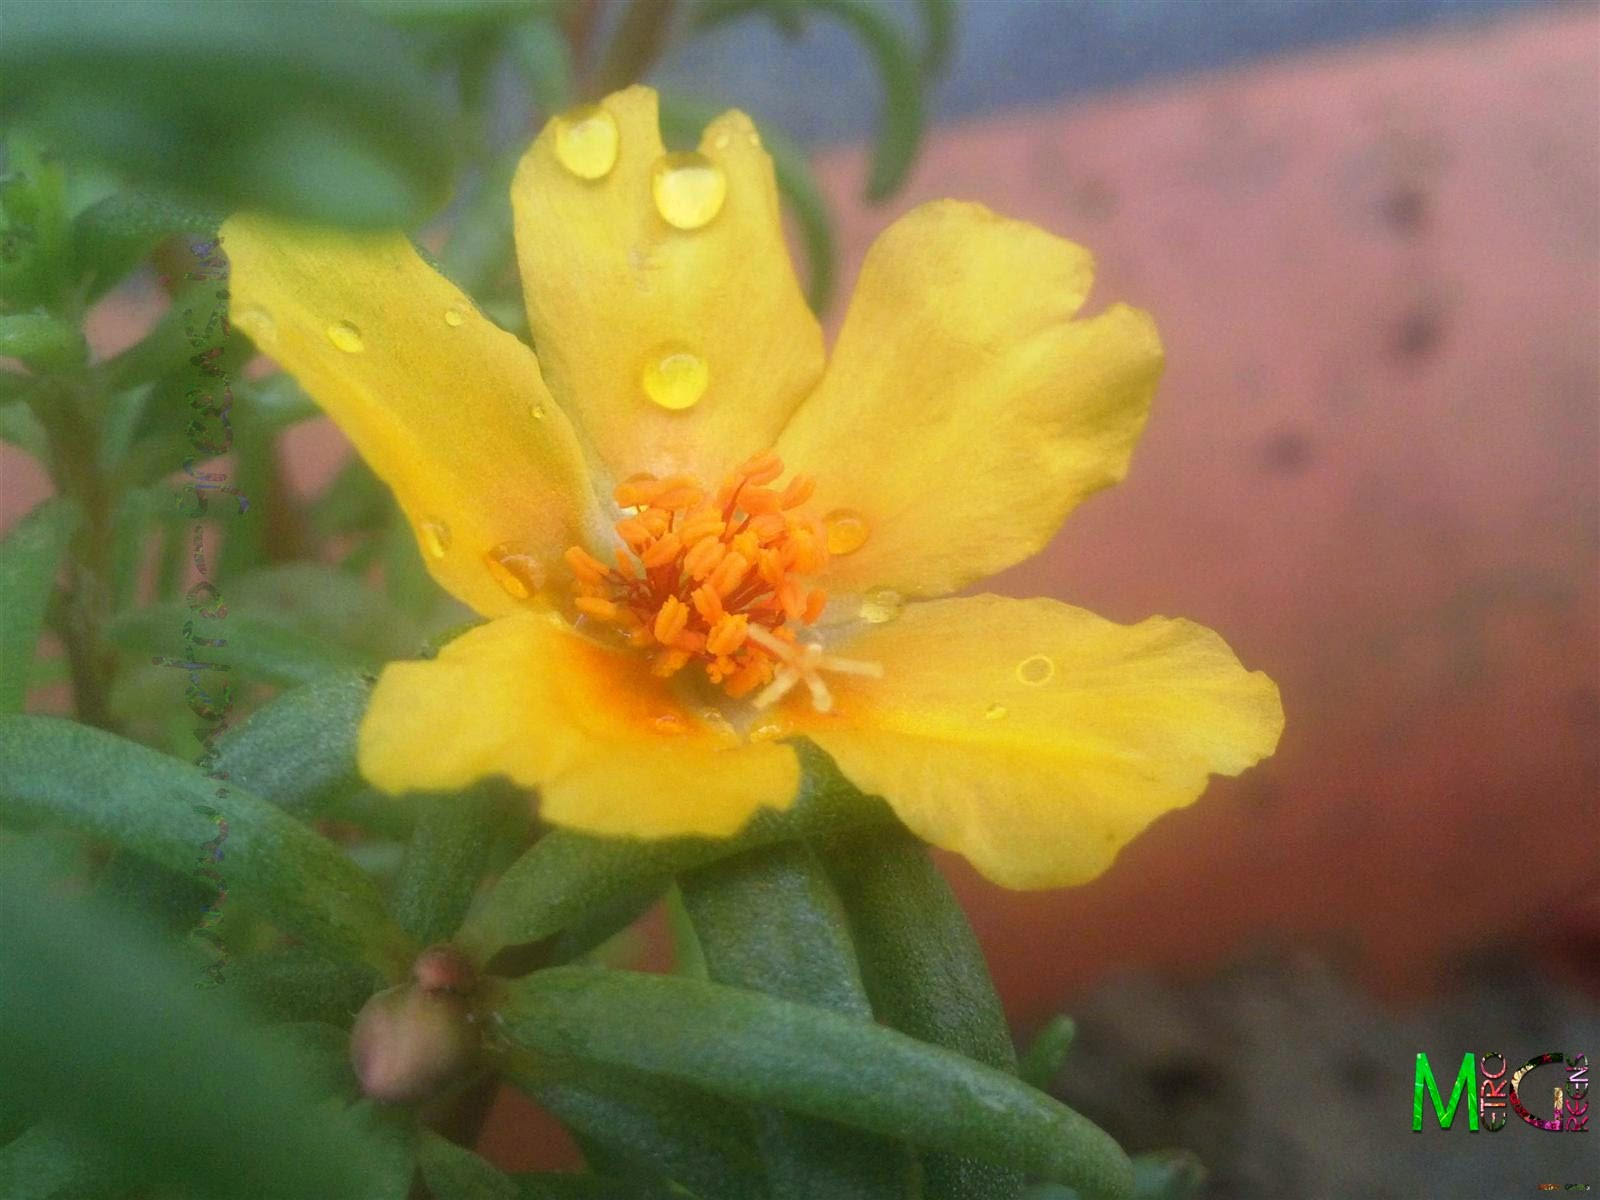 Metro Greens: A yellow portulaca bloom.